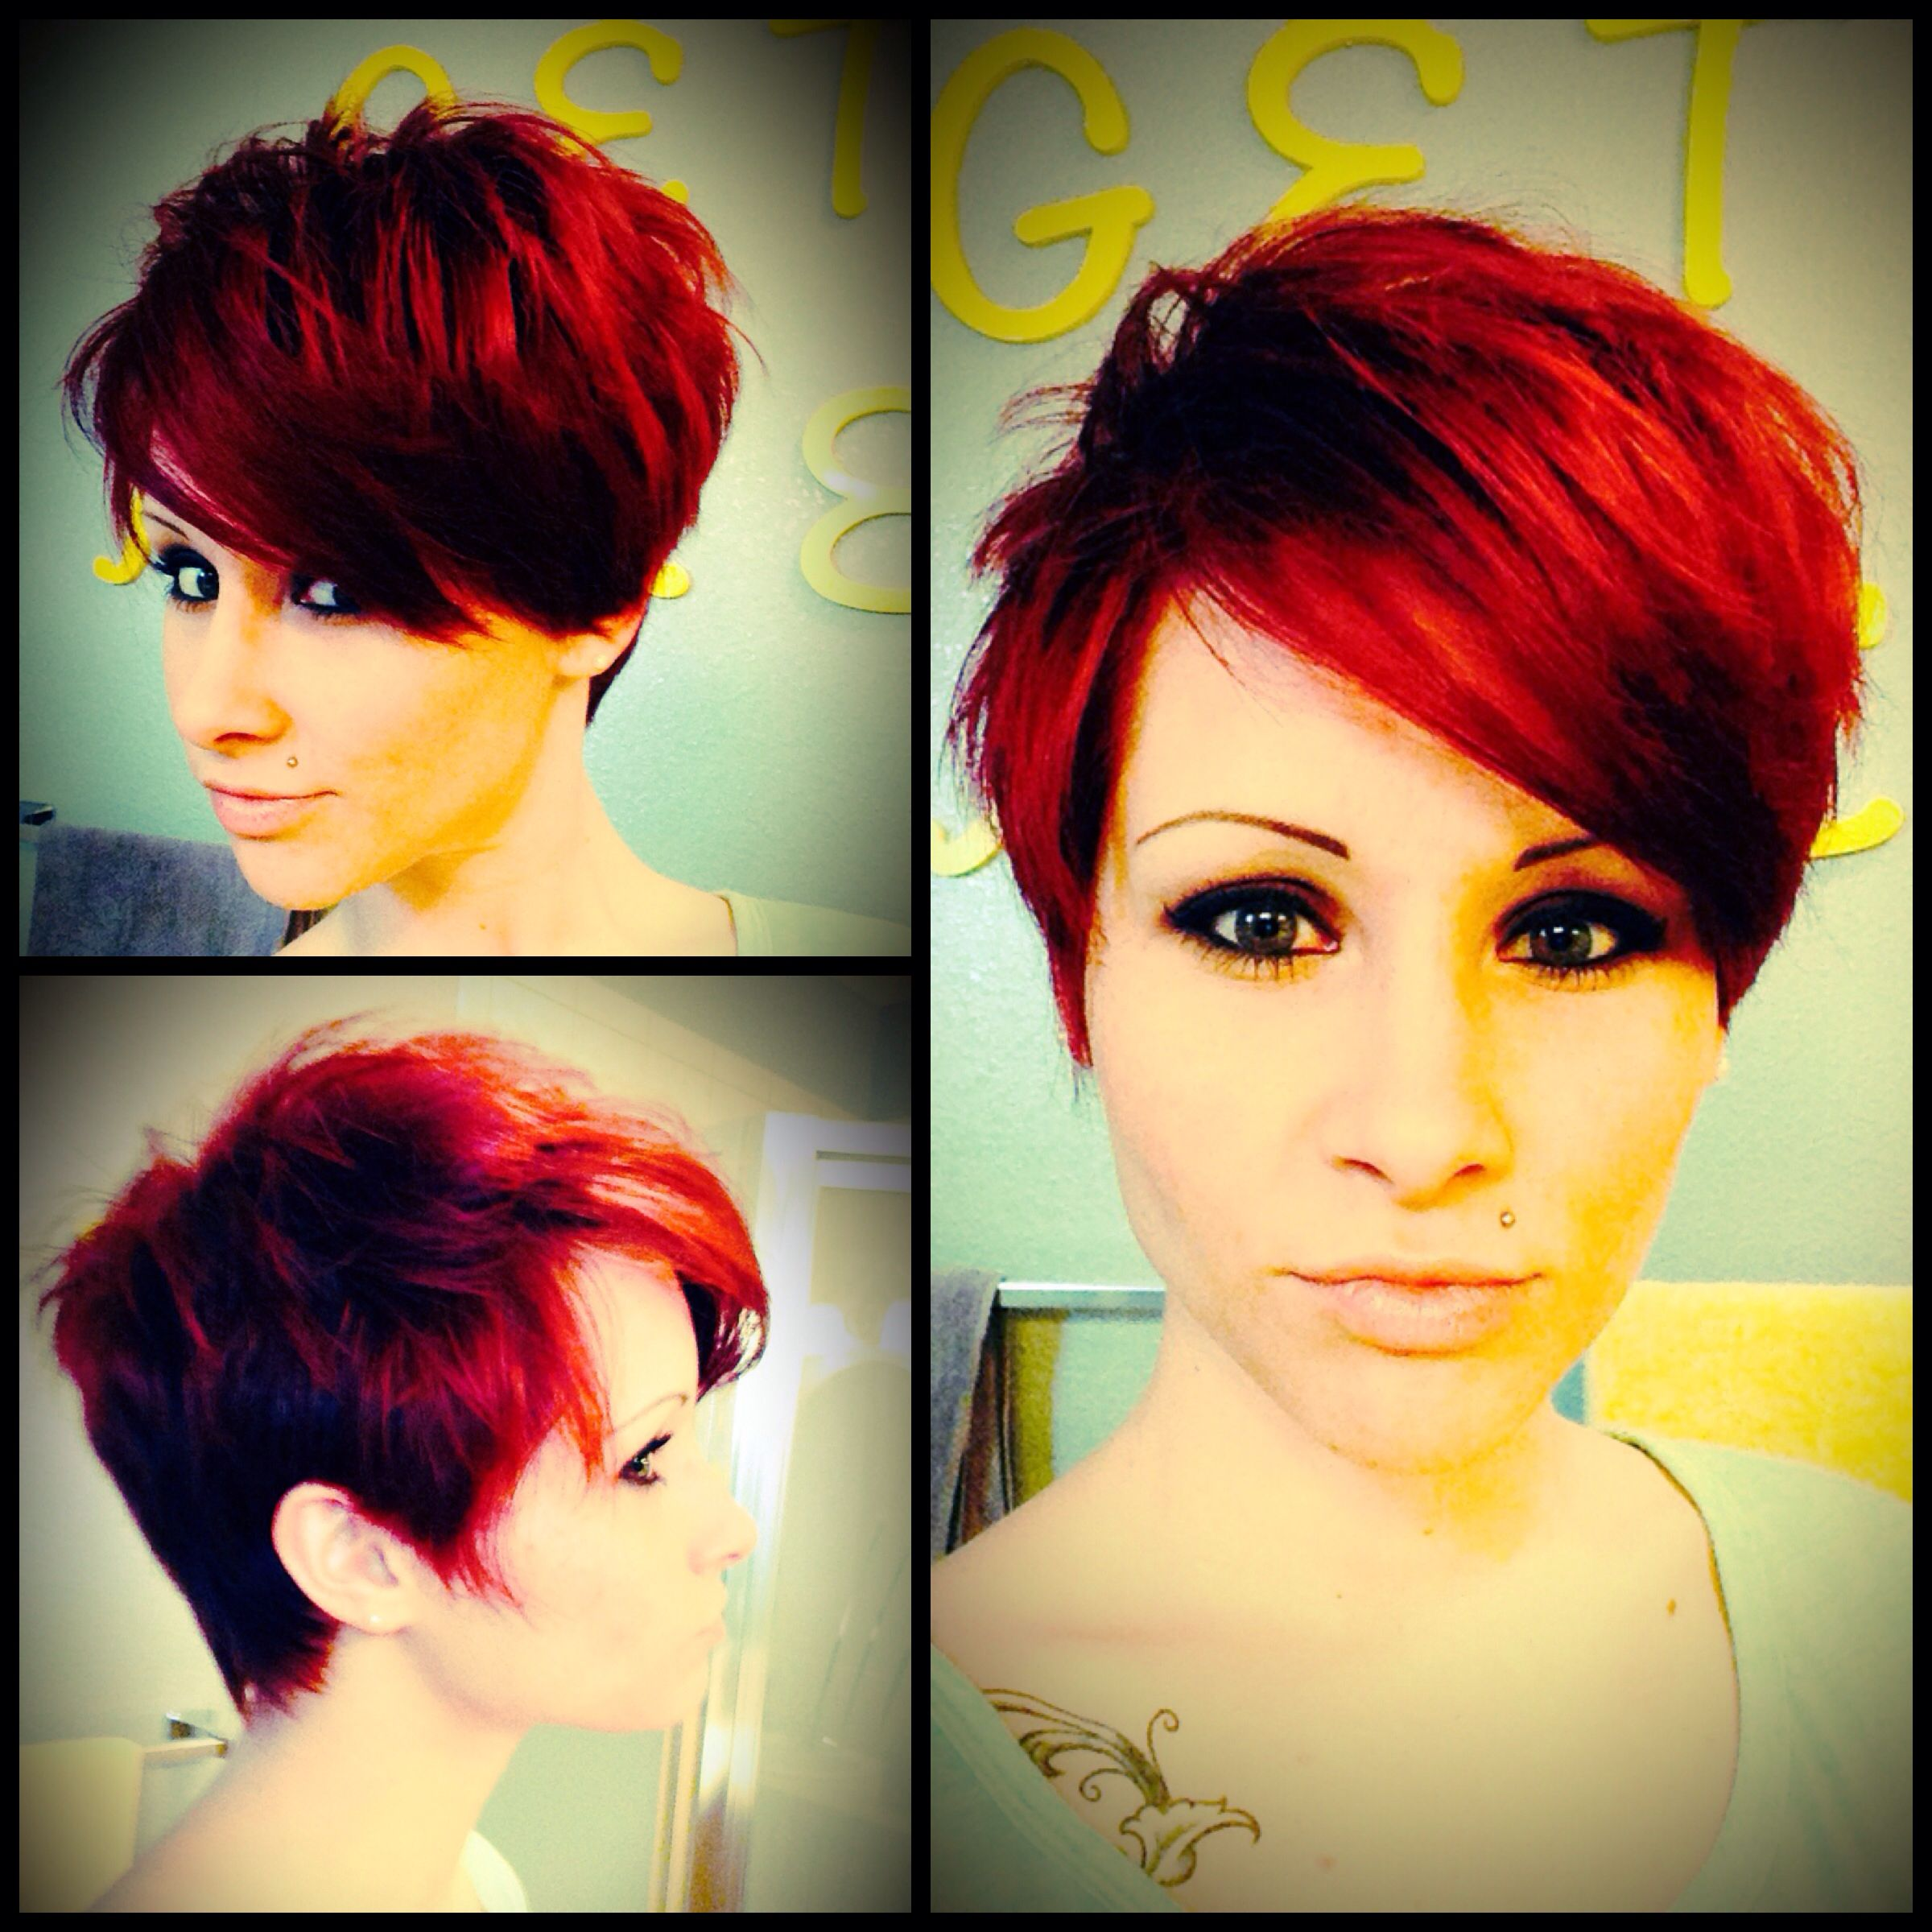 Red pixie cut hairstyles pinterest red pixie cuts red pixie